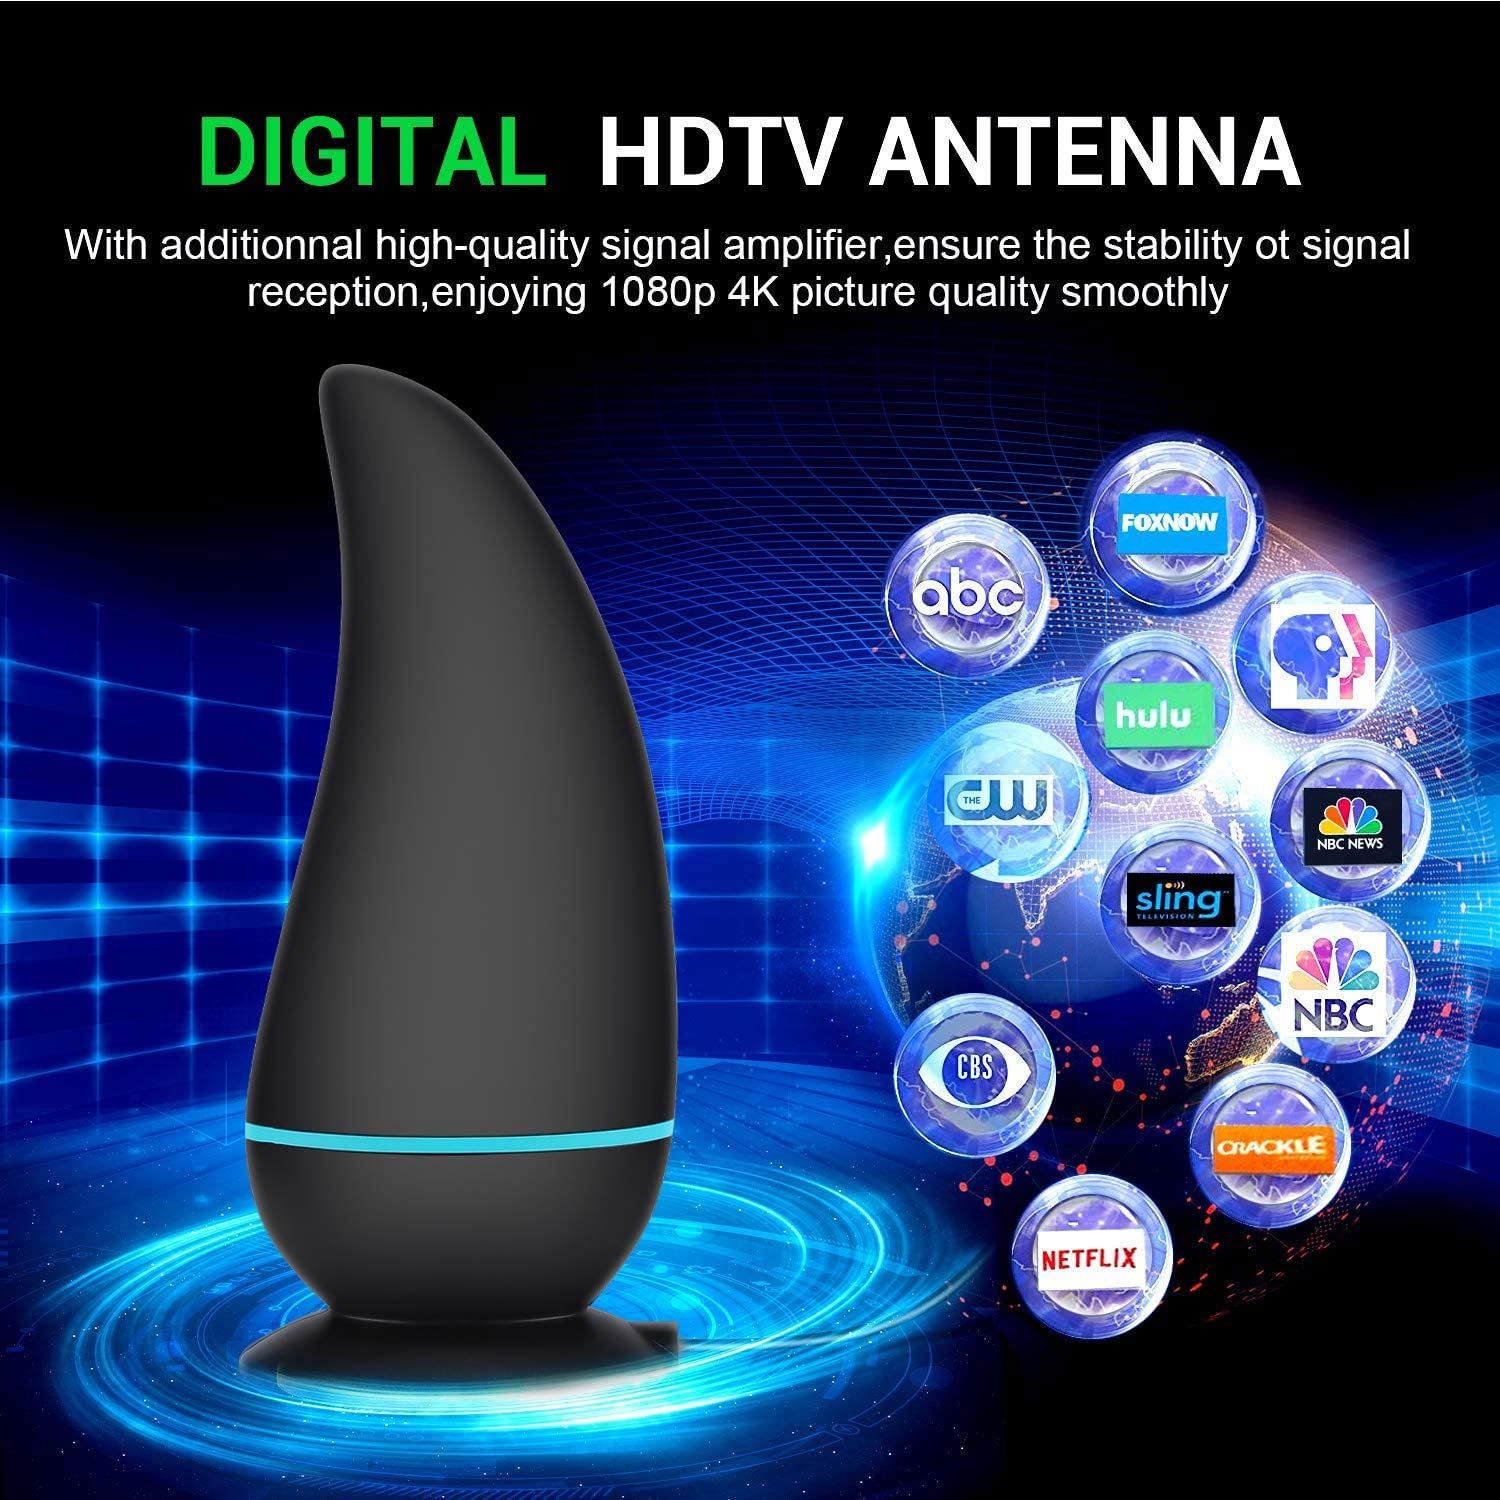 90-140 Miles Range Digital Antenna for HDTV Freeview Life Local Channels HD TV Antenna Support 4K 1080P with Adjustable Amplifier Signal Booster Updated 2020 Best TV Antenna for Digital TV Indoor